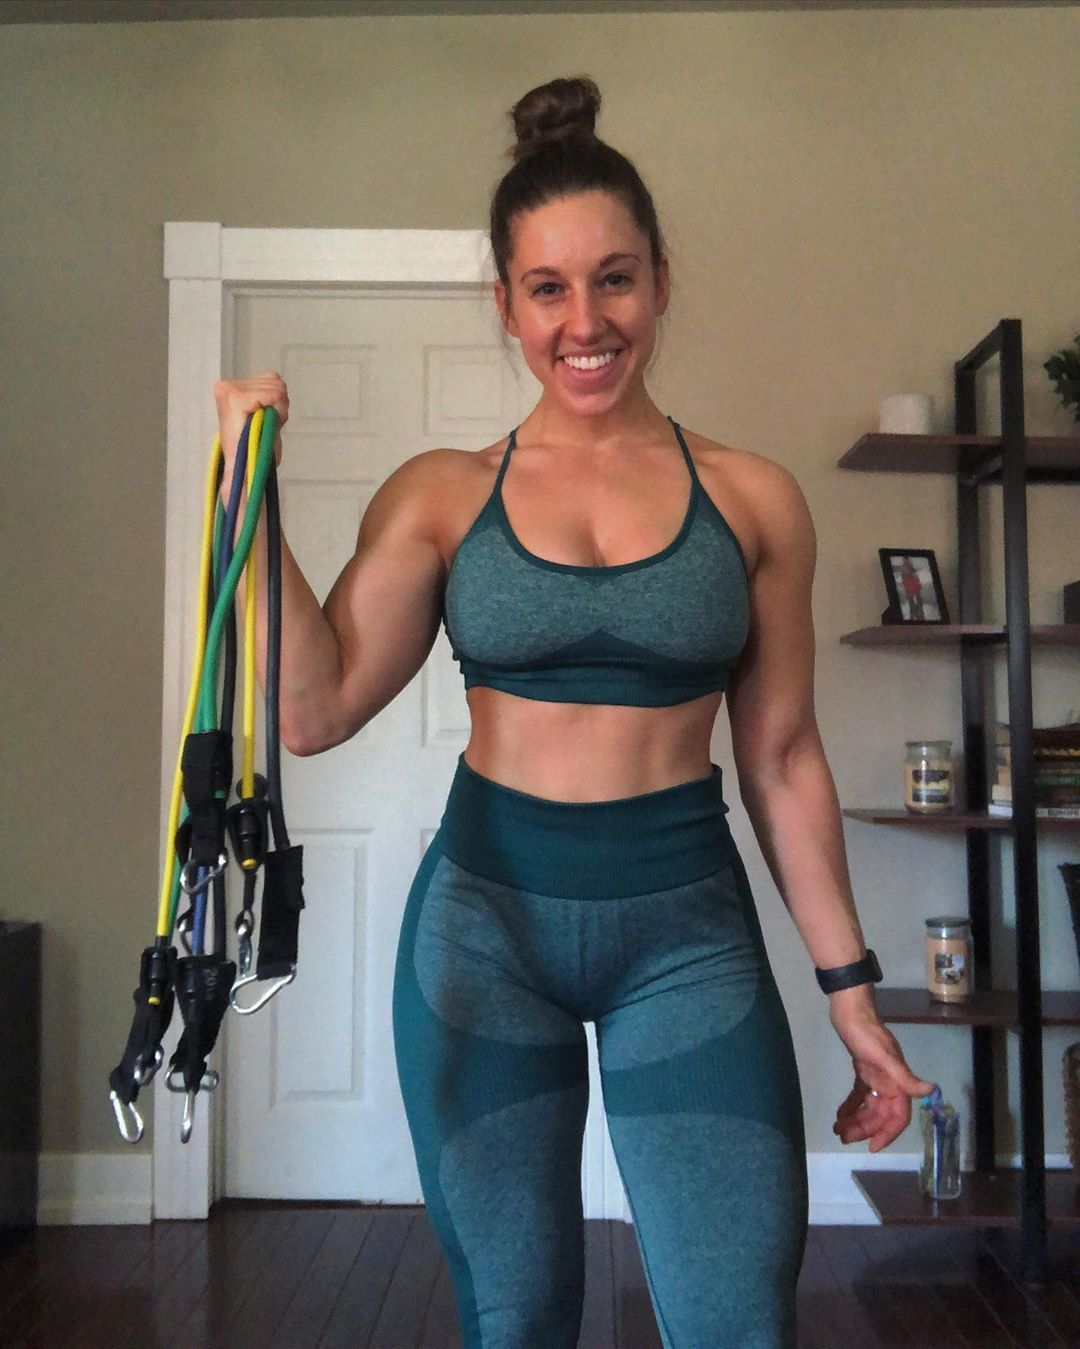 Stephanie C. review of Resistance Bands Set | Stay Fit